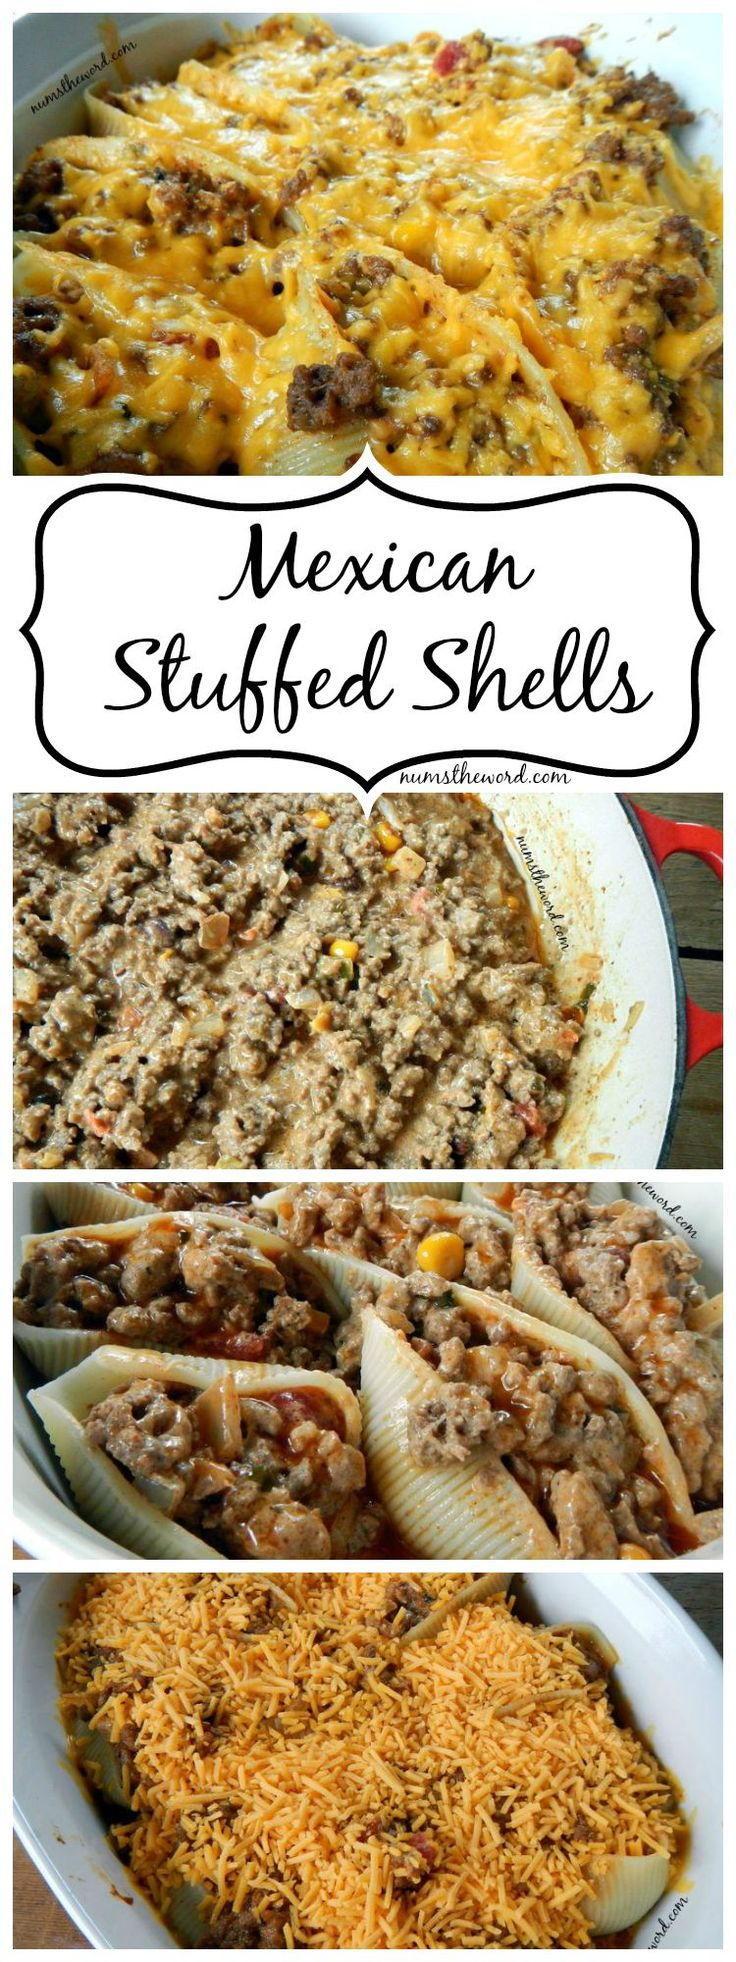 If you love Mexican food and love food that reheats well for leftovers, then try these simple, yet delicious Mexican Stuffed Shells. A perfect dish!